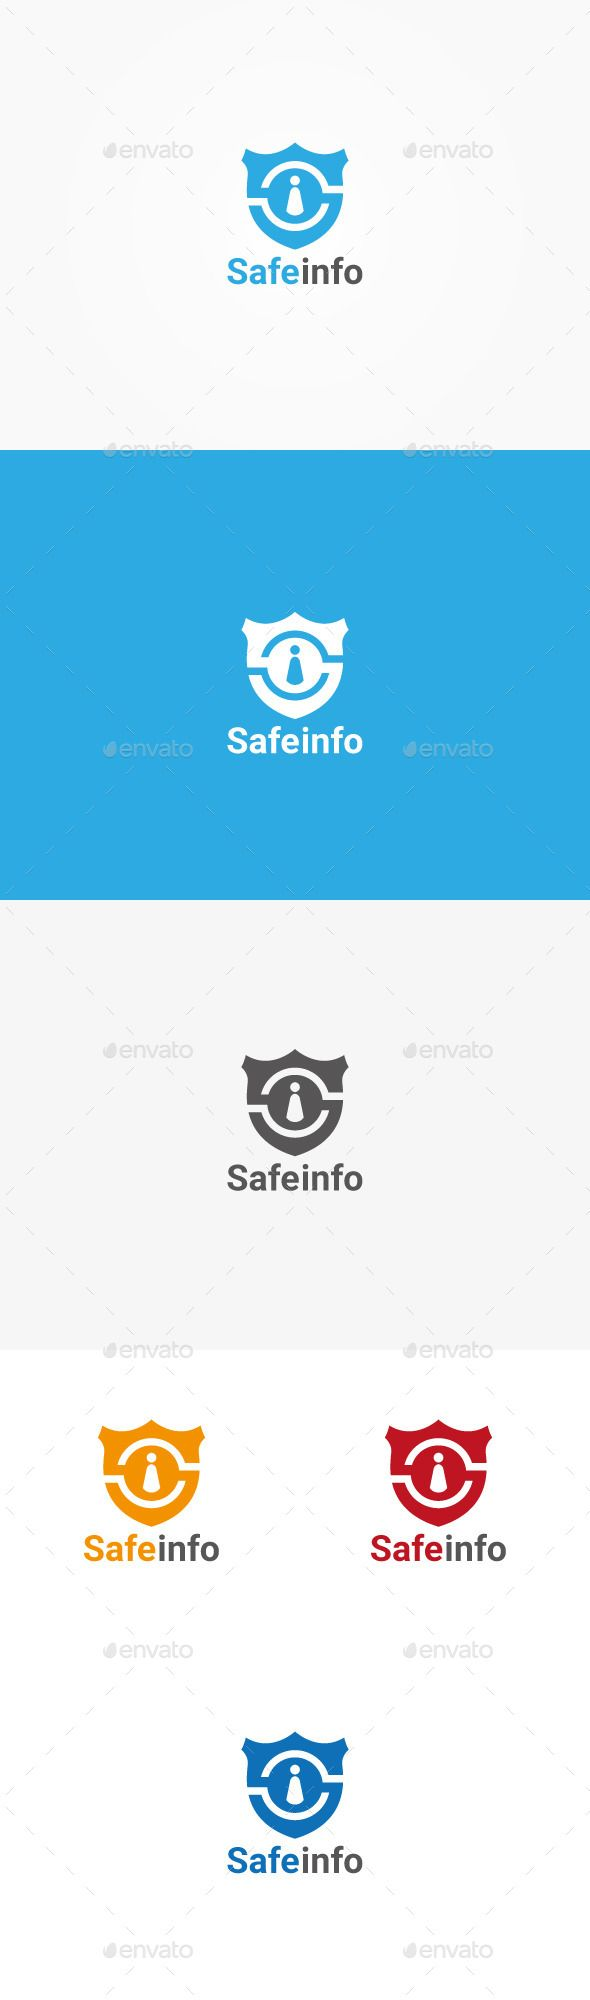 Safe Info Logo (AI Illustrator, Resizable, CS, abstract, access, card, credit, data, human, i, icon, id, identification, identity, info, information, insurance, logo, privacy, private, protect, protection, safe, safety, secure, security, shield, sign, symbol, theft, user, vector)